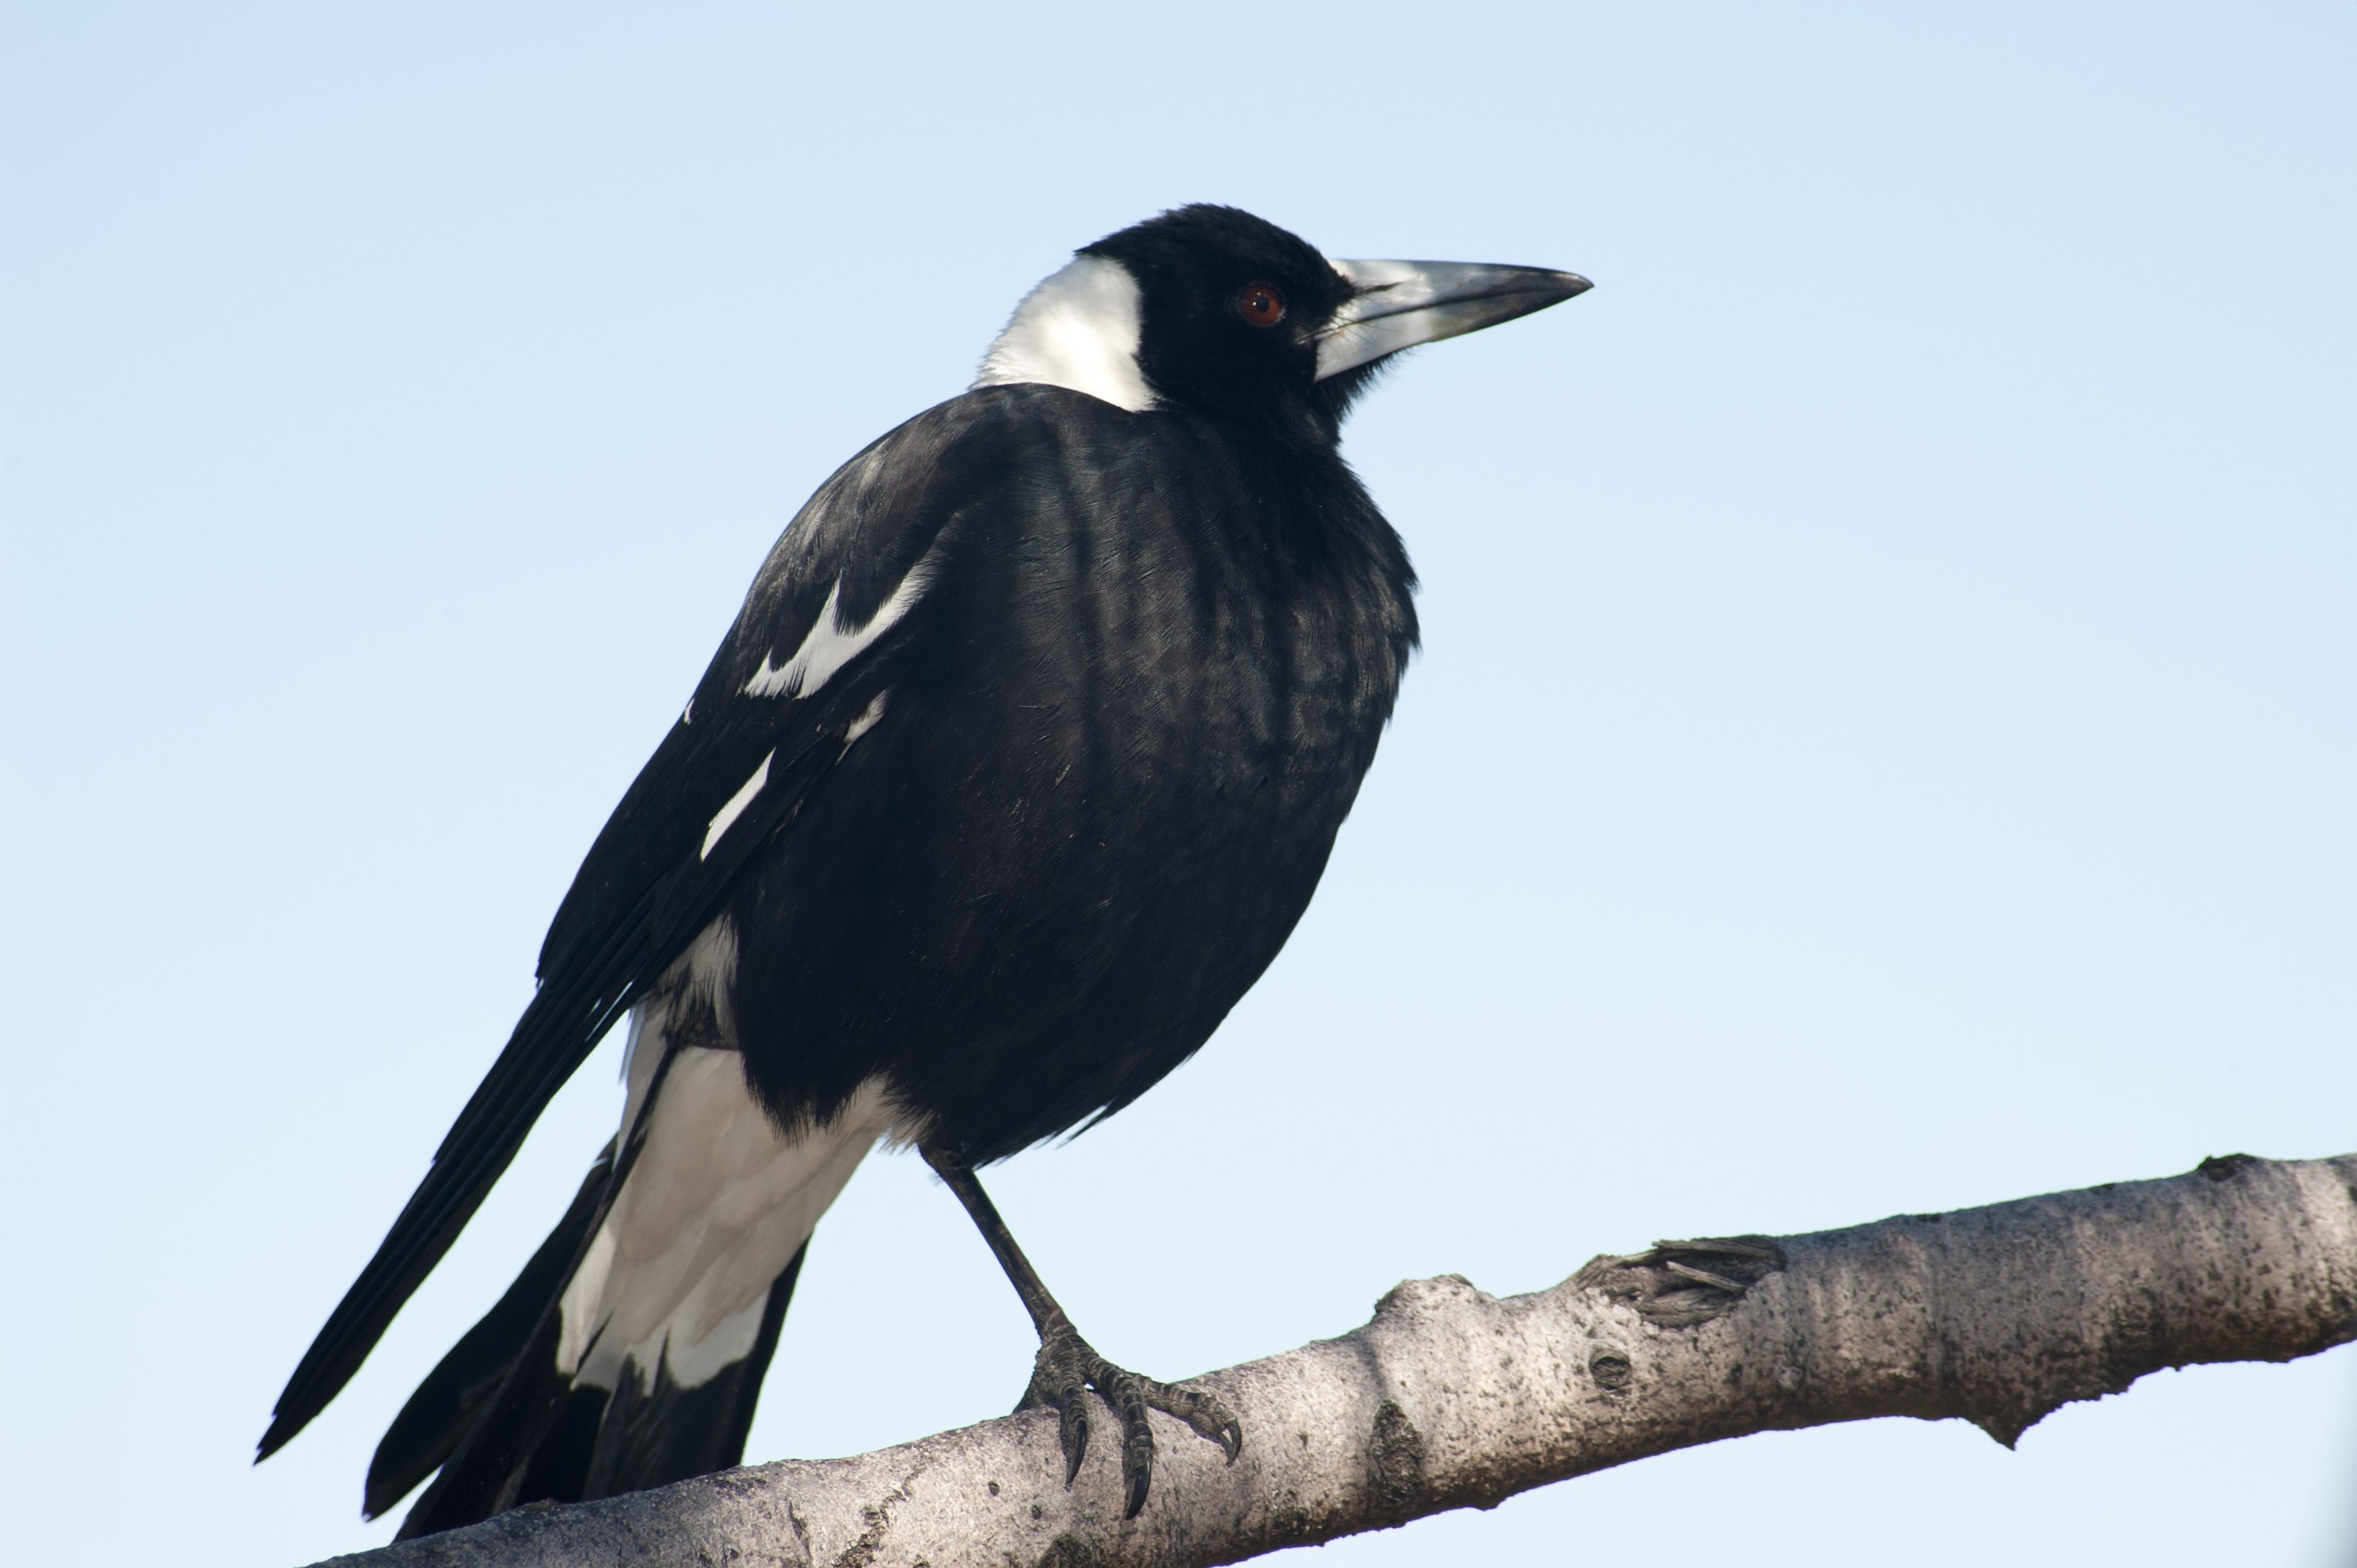 magpie perched on a branch